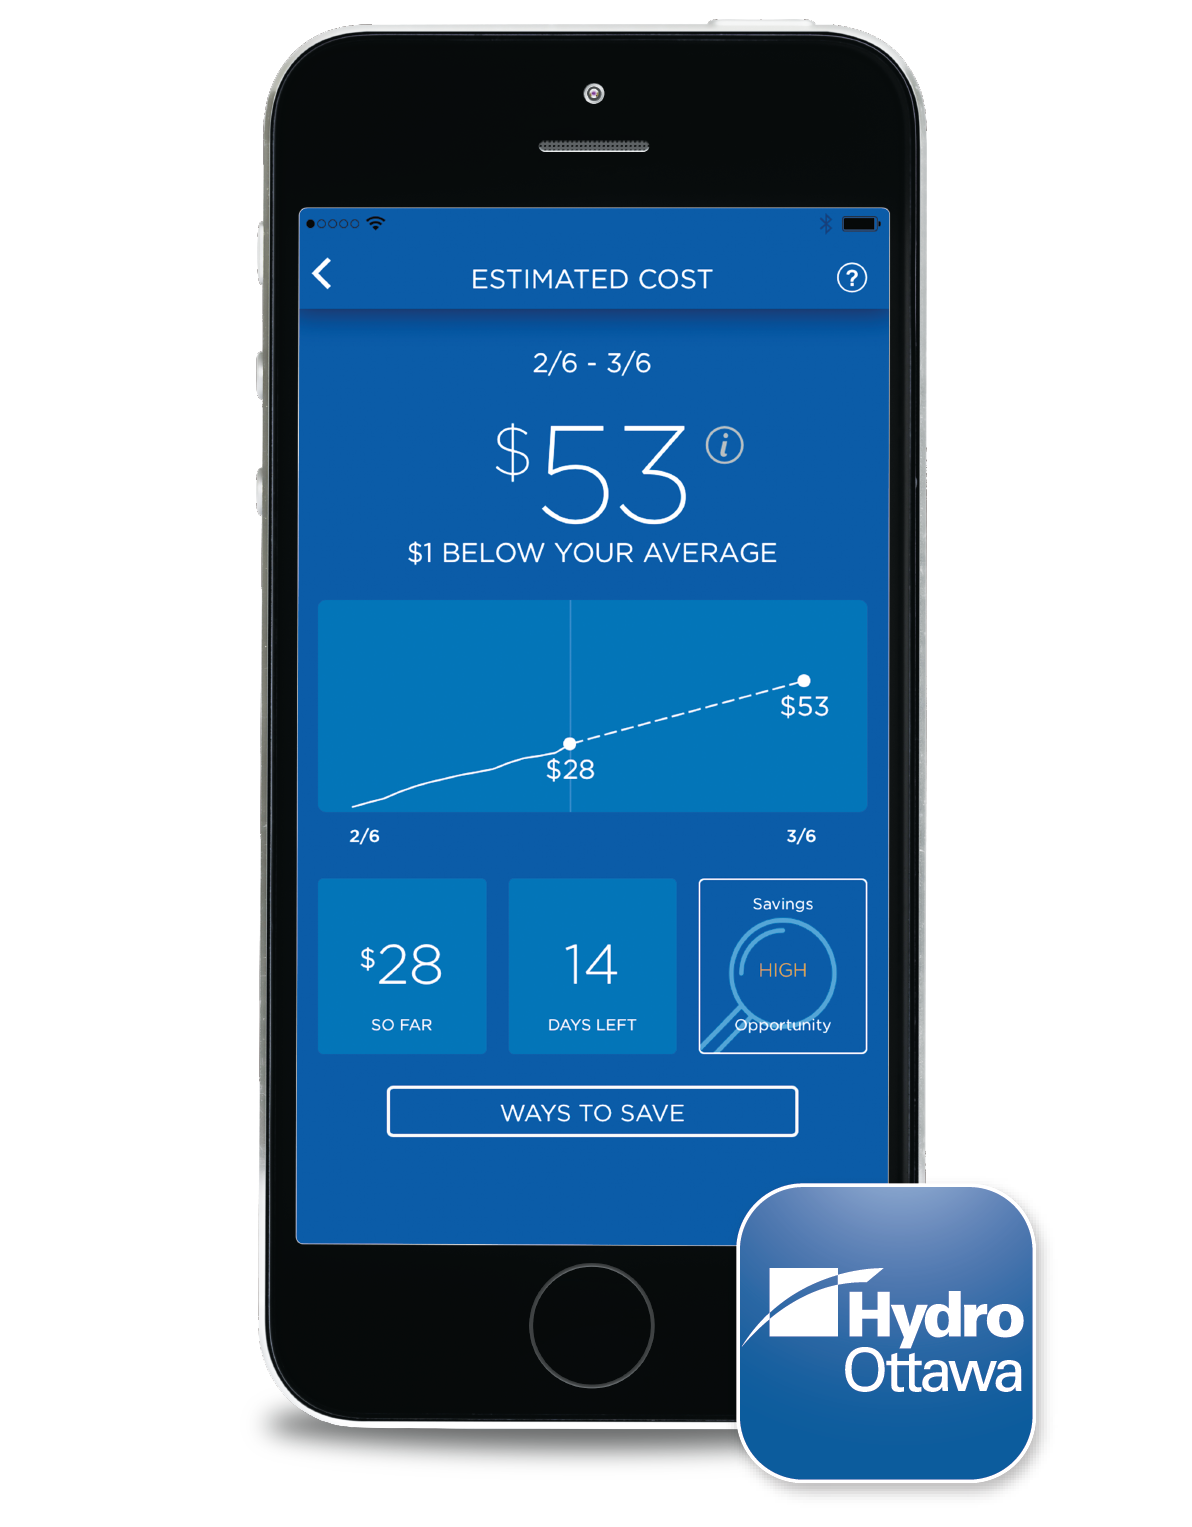 Hydro Ottawa App Estimated Cost Report